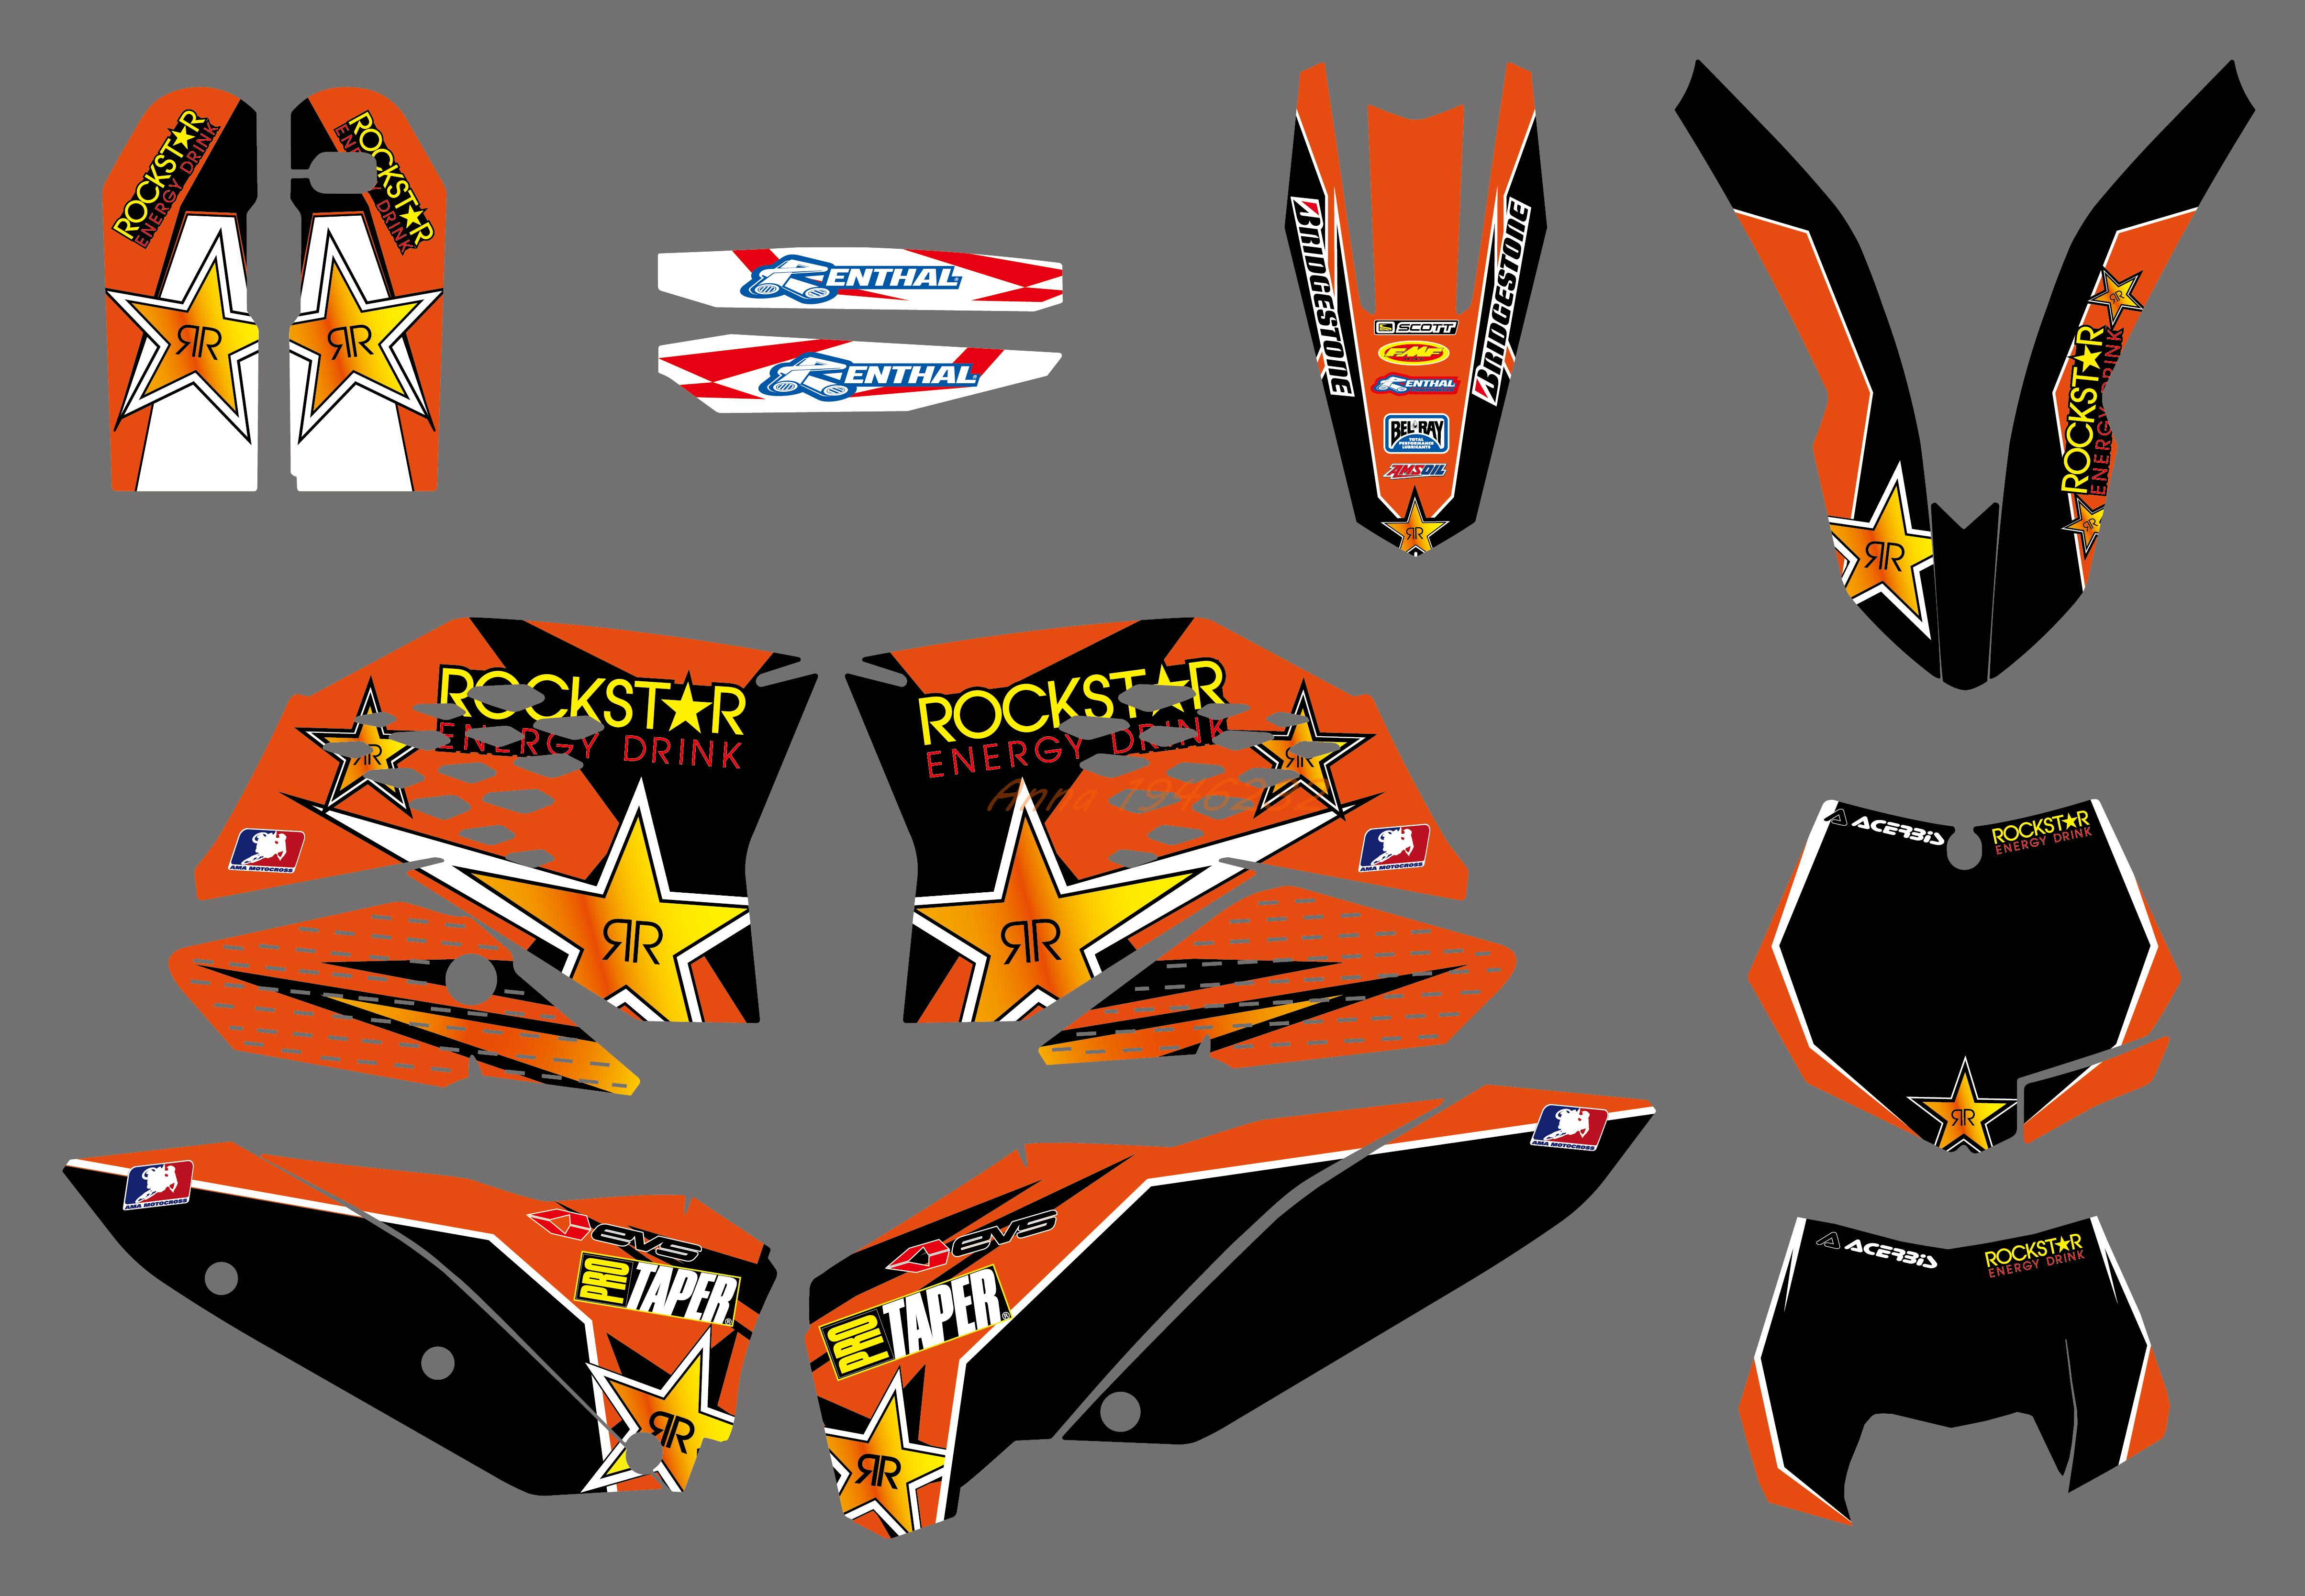 NEW Style TEAM GRAPHIC WITH BACKGROUNDS DECAL STICKER FOR KTM 125 250 300 350 450 525 SX SXF 2007 2008 2009 2010-in Decals & Stickers from Automobiles & Motorcycles    1